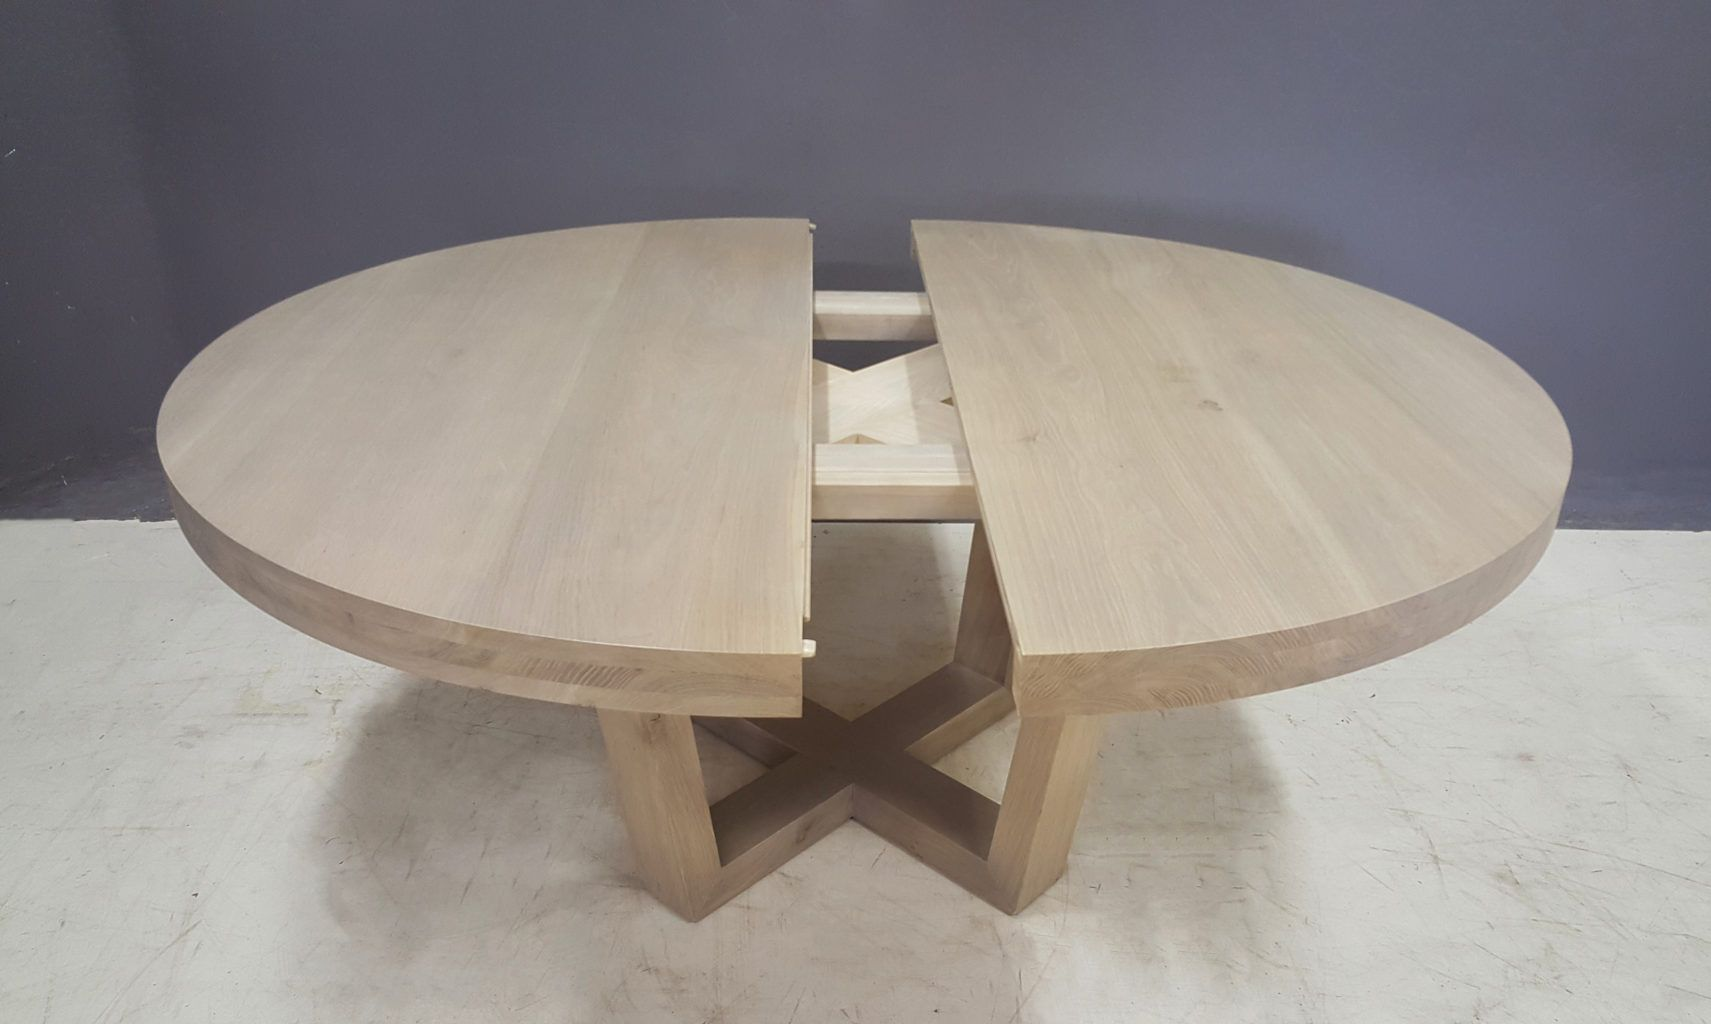 Solid Wood Dining Tables Round Extendable Dining Table Round